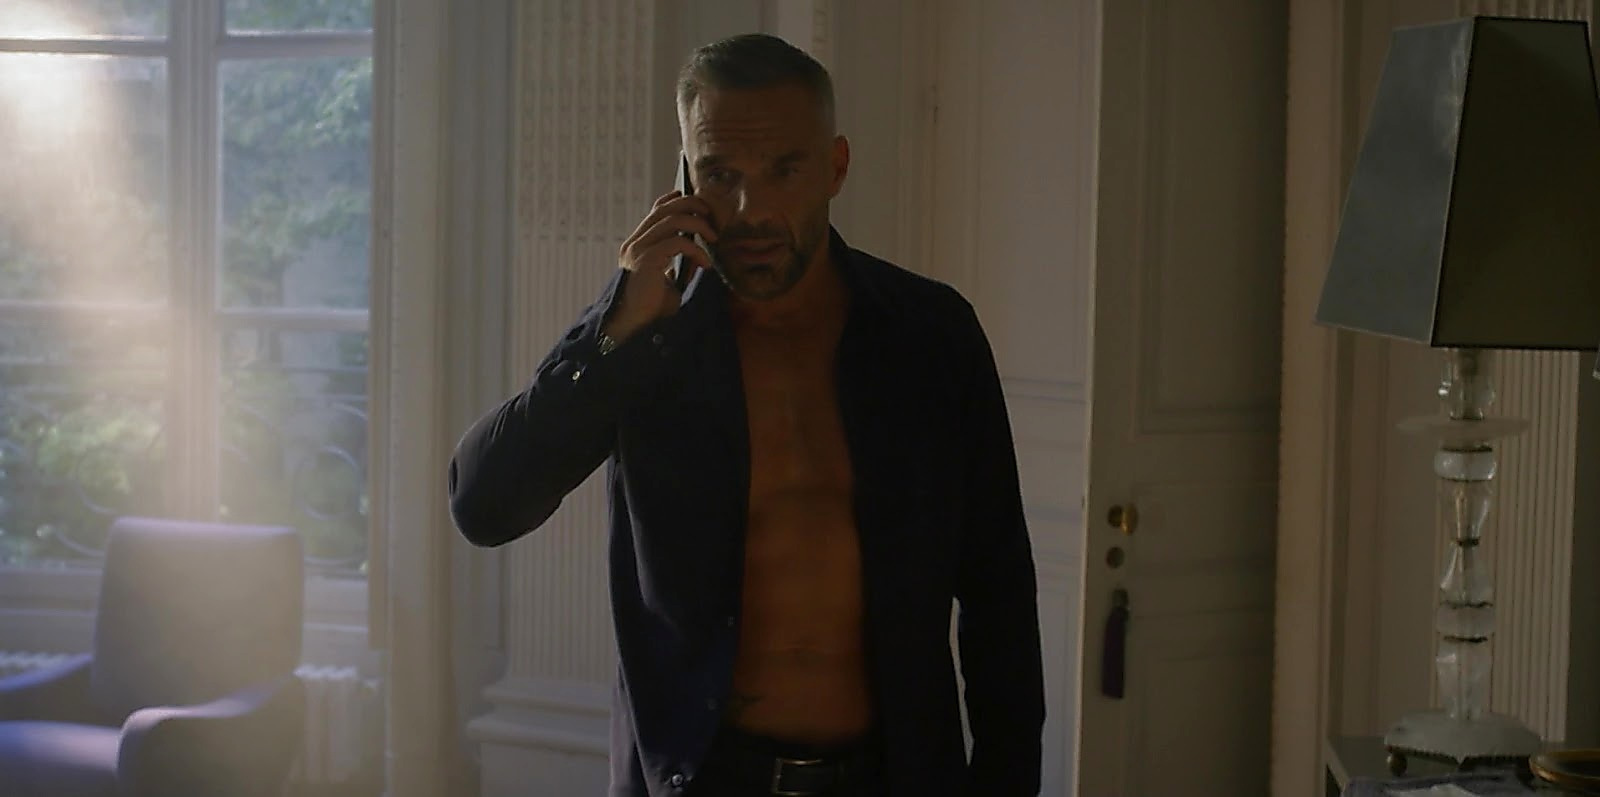 Philippe Bas sexy shirtless scene March 8, 2020, 2pm